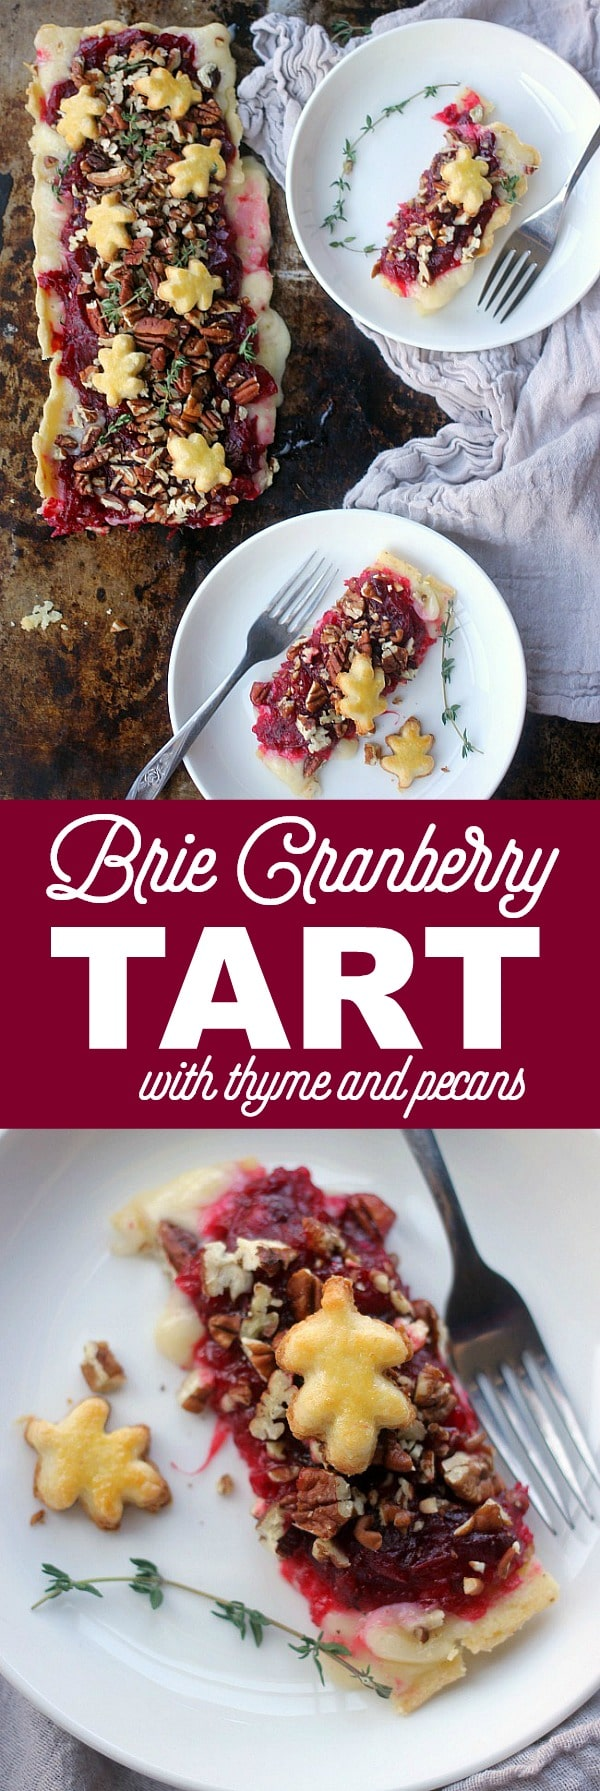 This Brie Cranberry Tart with Thyme and Pecans is a unique take on a Brie en Croute! Serve this as an appetizer or a dessert to your holiday meal. It is sure to impress a crowd.